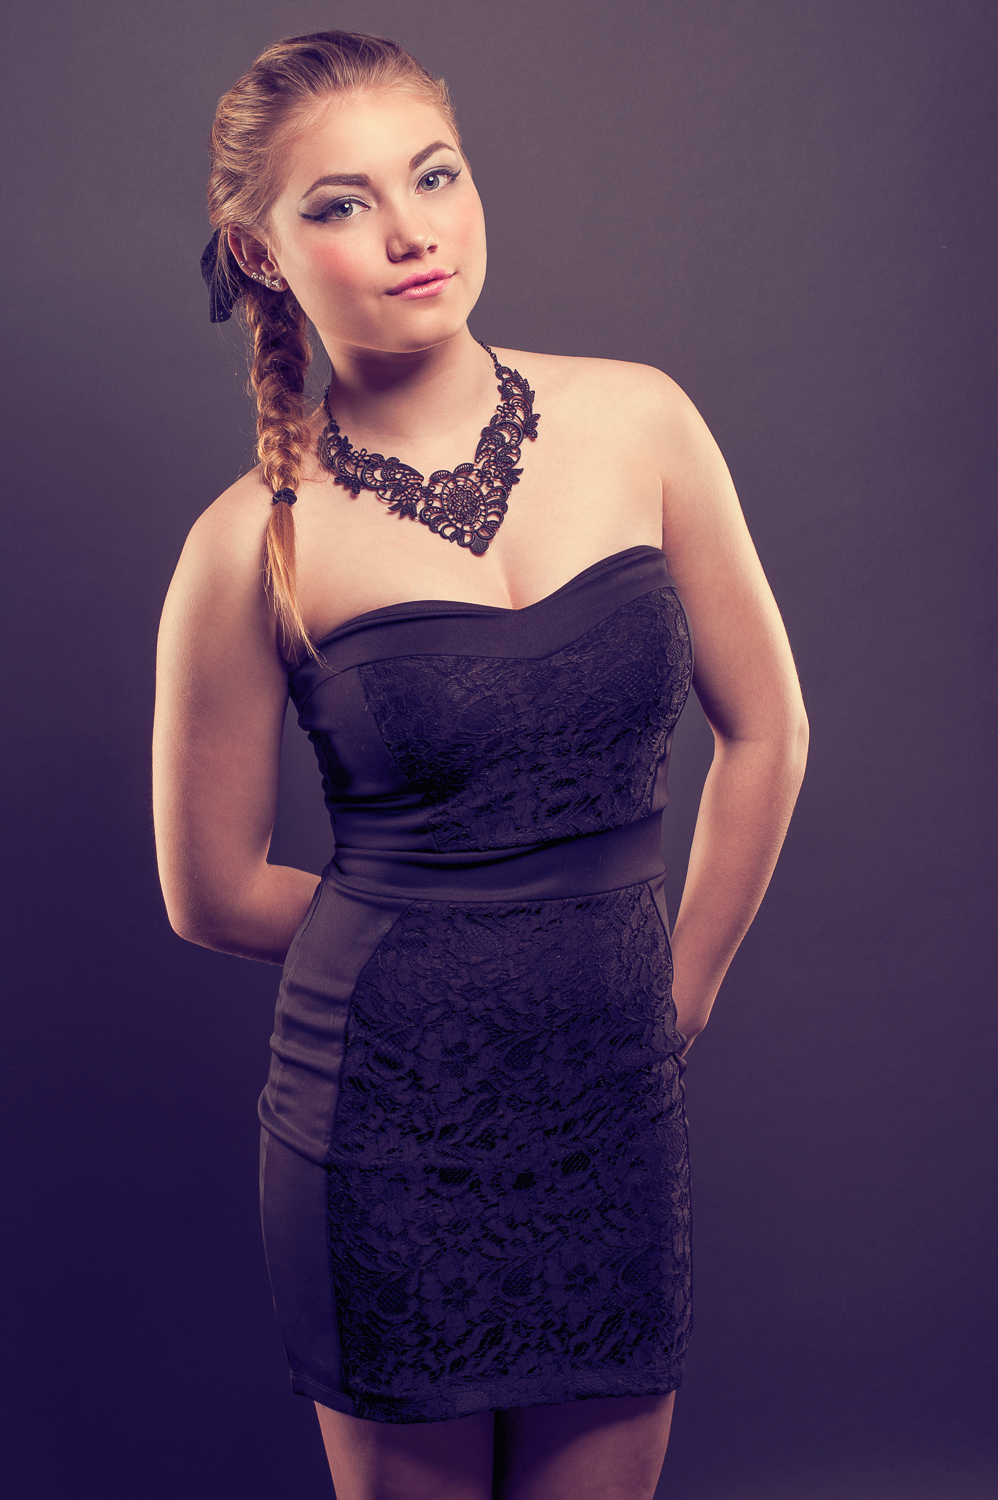 Hamilton Fashion Photographer - Little Black Dress - Photo by Marek Michalek.jpg